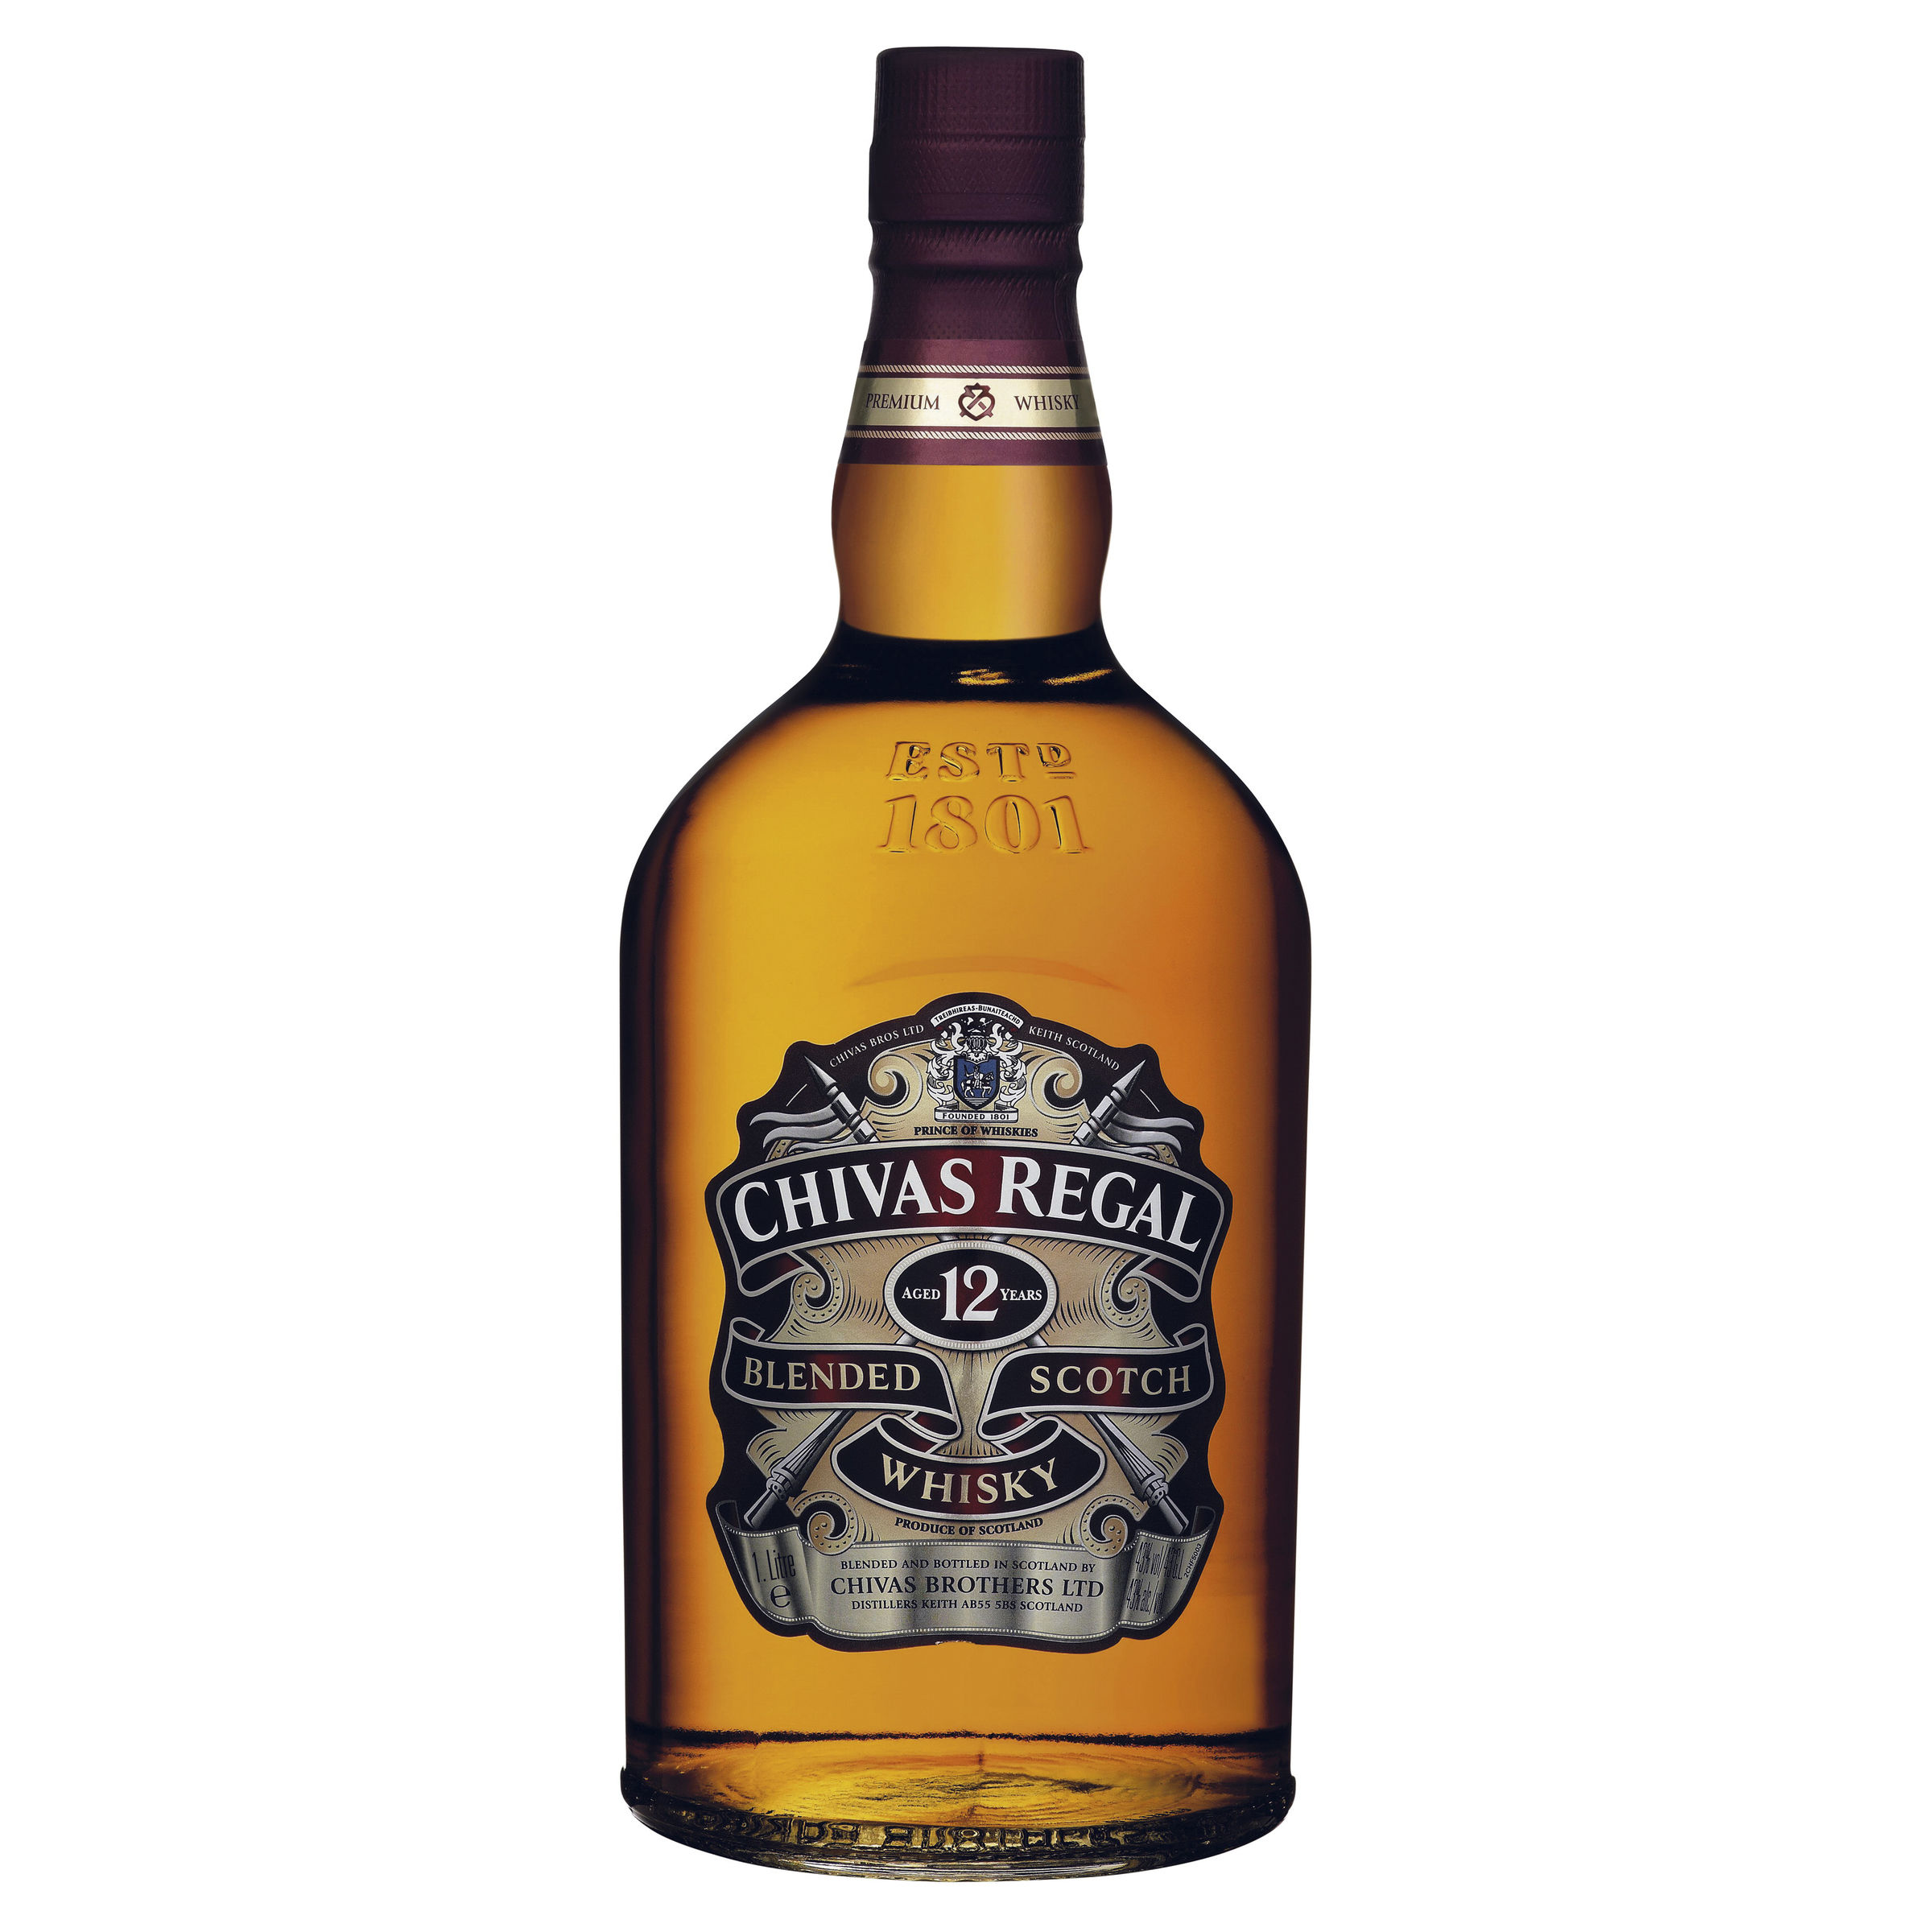 CHIVAS REGAL 12YEAR OLD